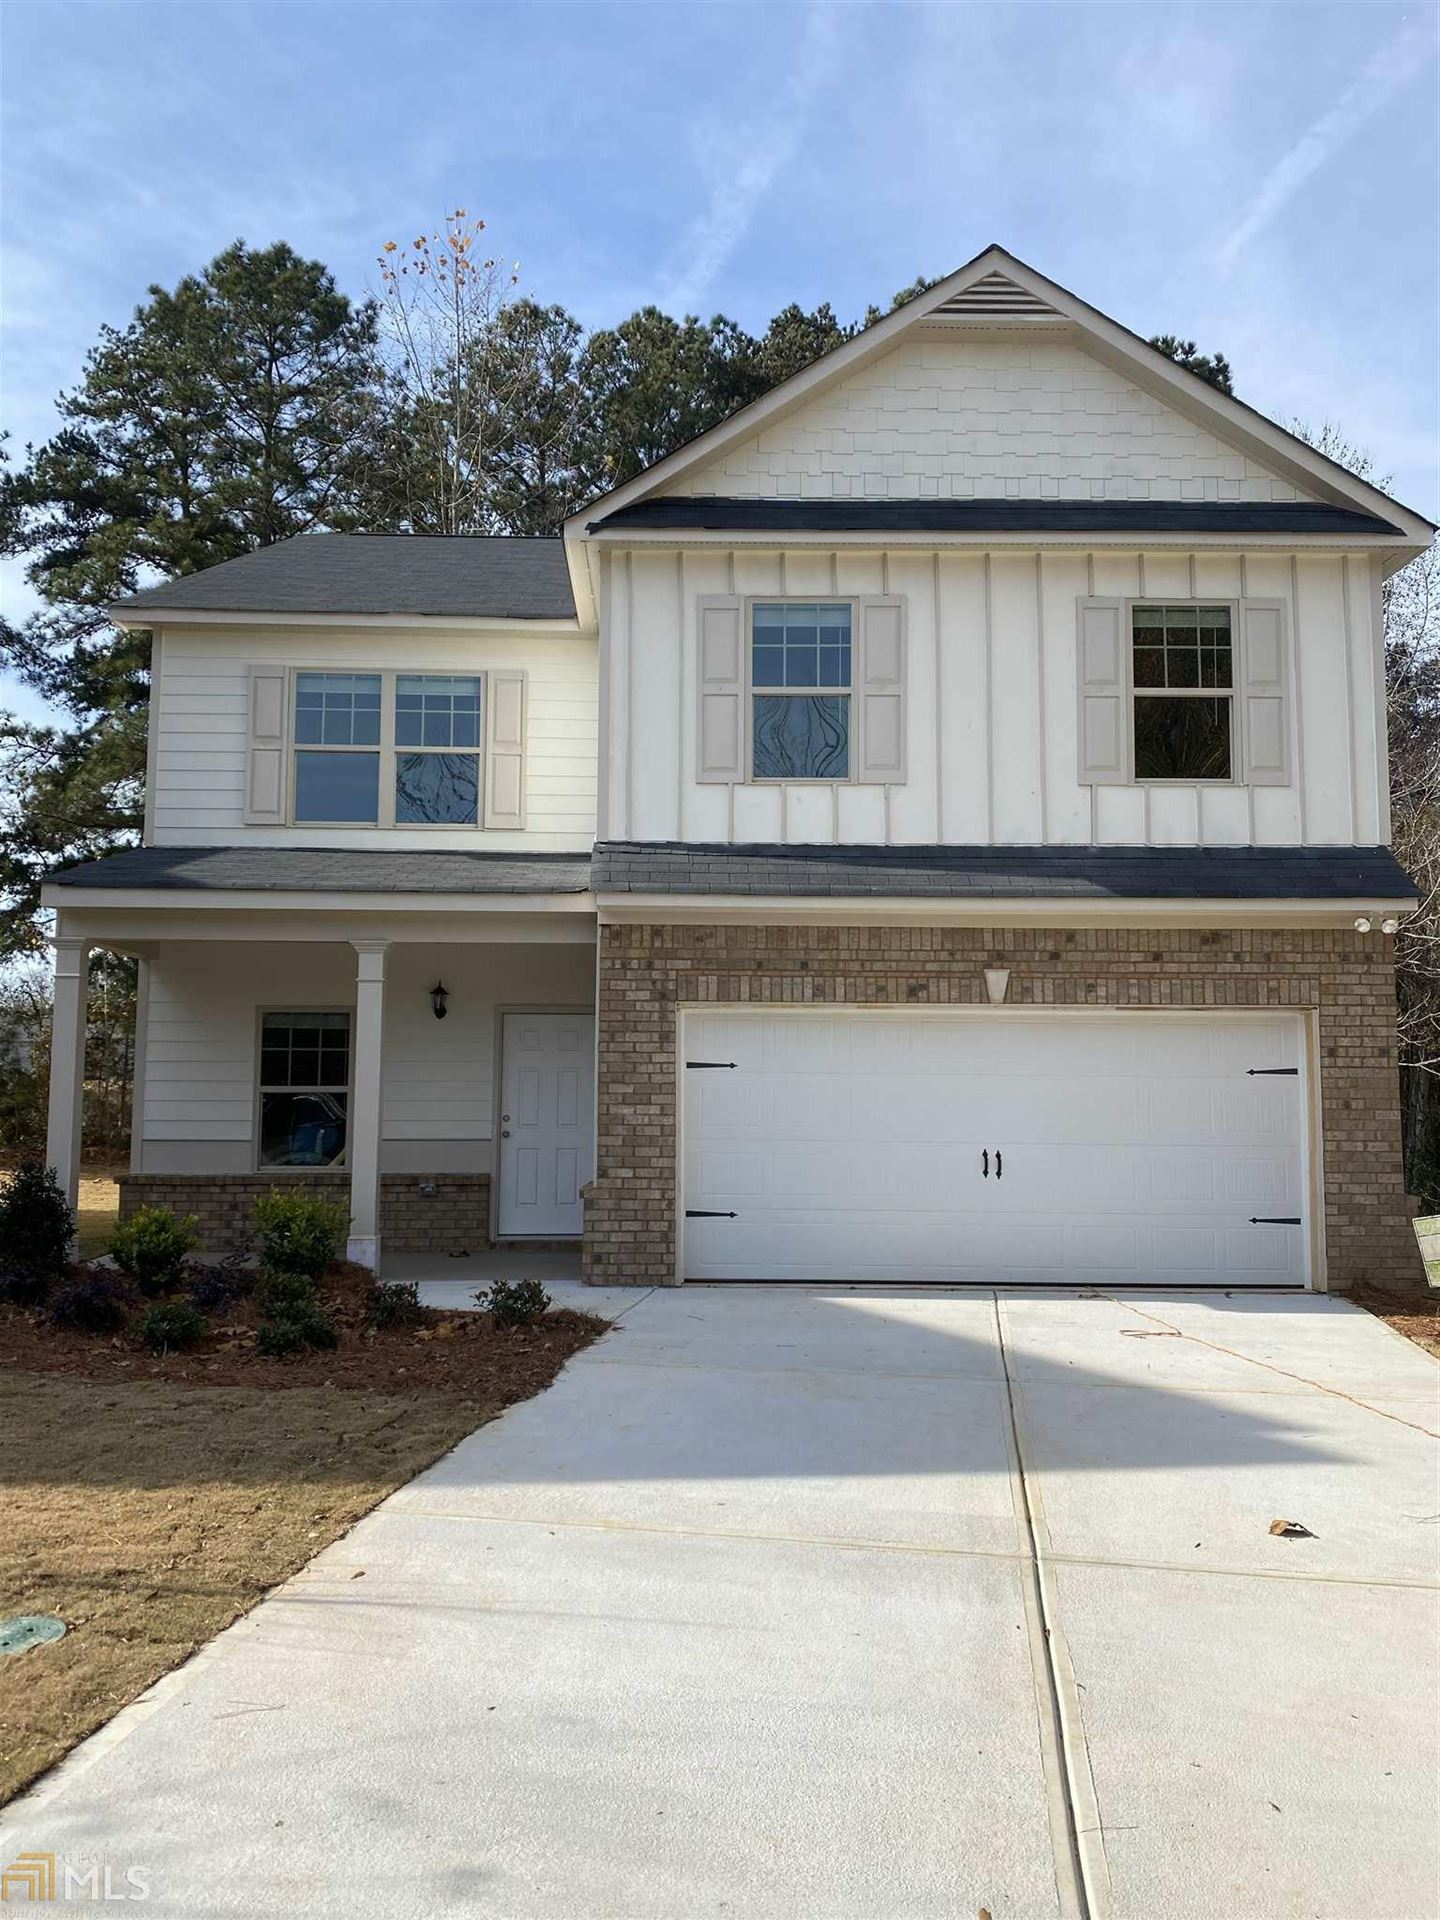 397 Meeting St, McDonough, GA 30252 - MLS#: 8849586